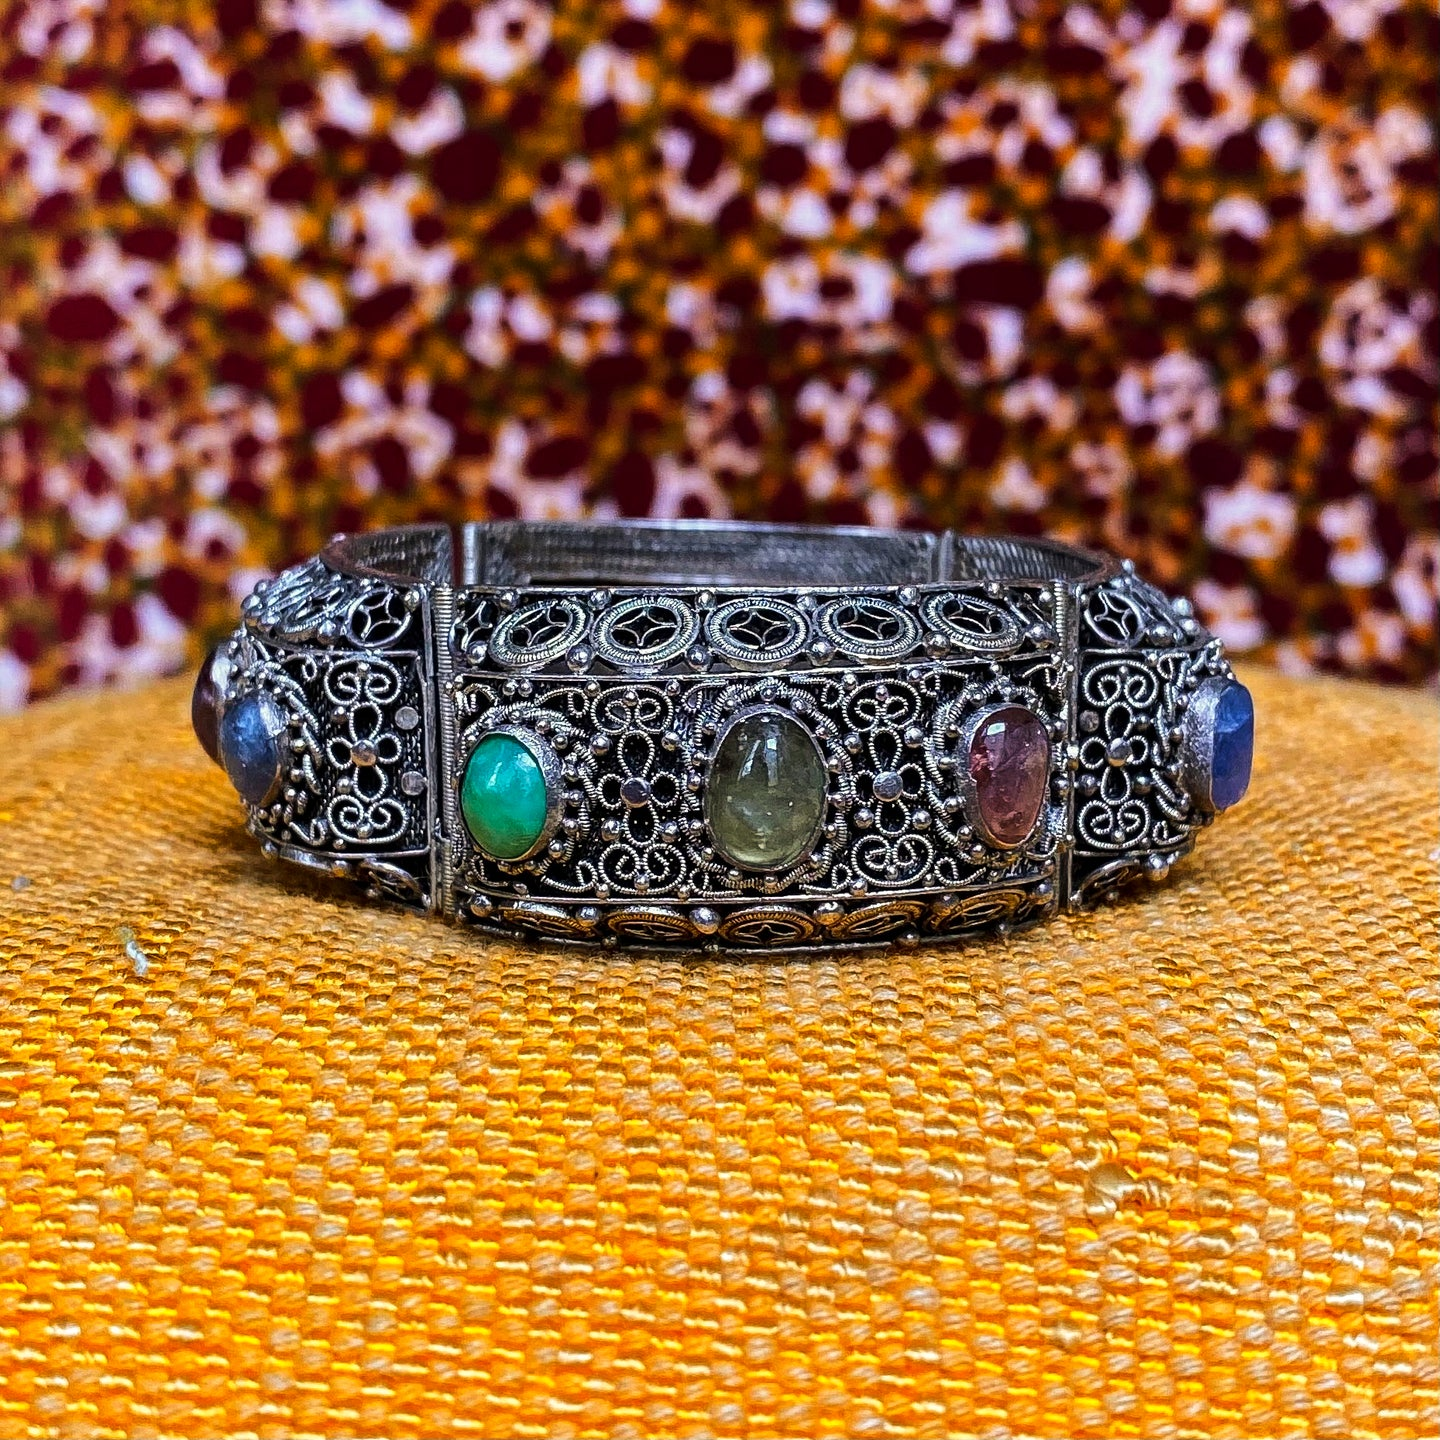 Silver Filigree & Gemstone Bracelet c1920